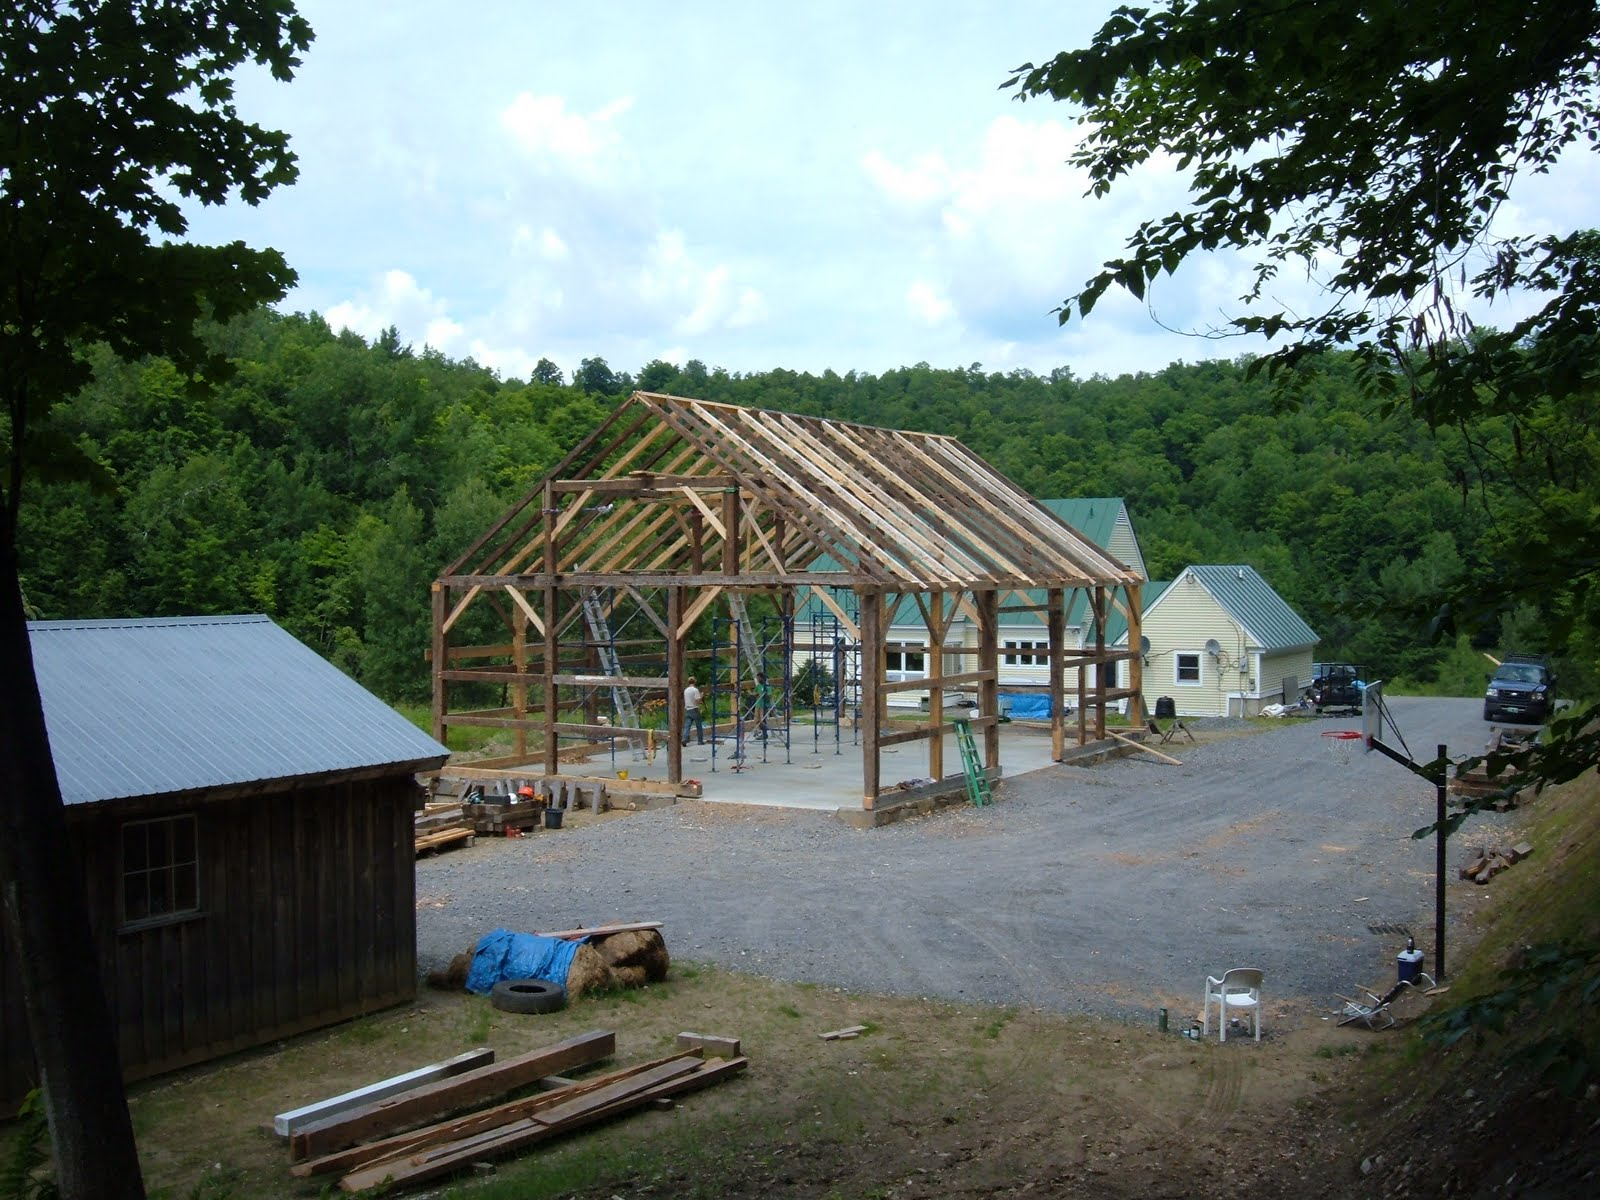 The frame assembly nears completion.  Only the interior posts and second floor system are missing in this photo.